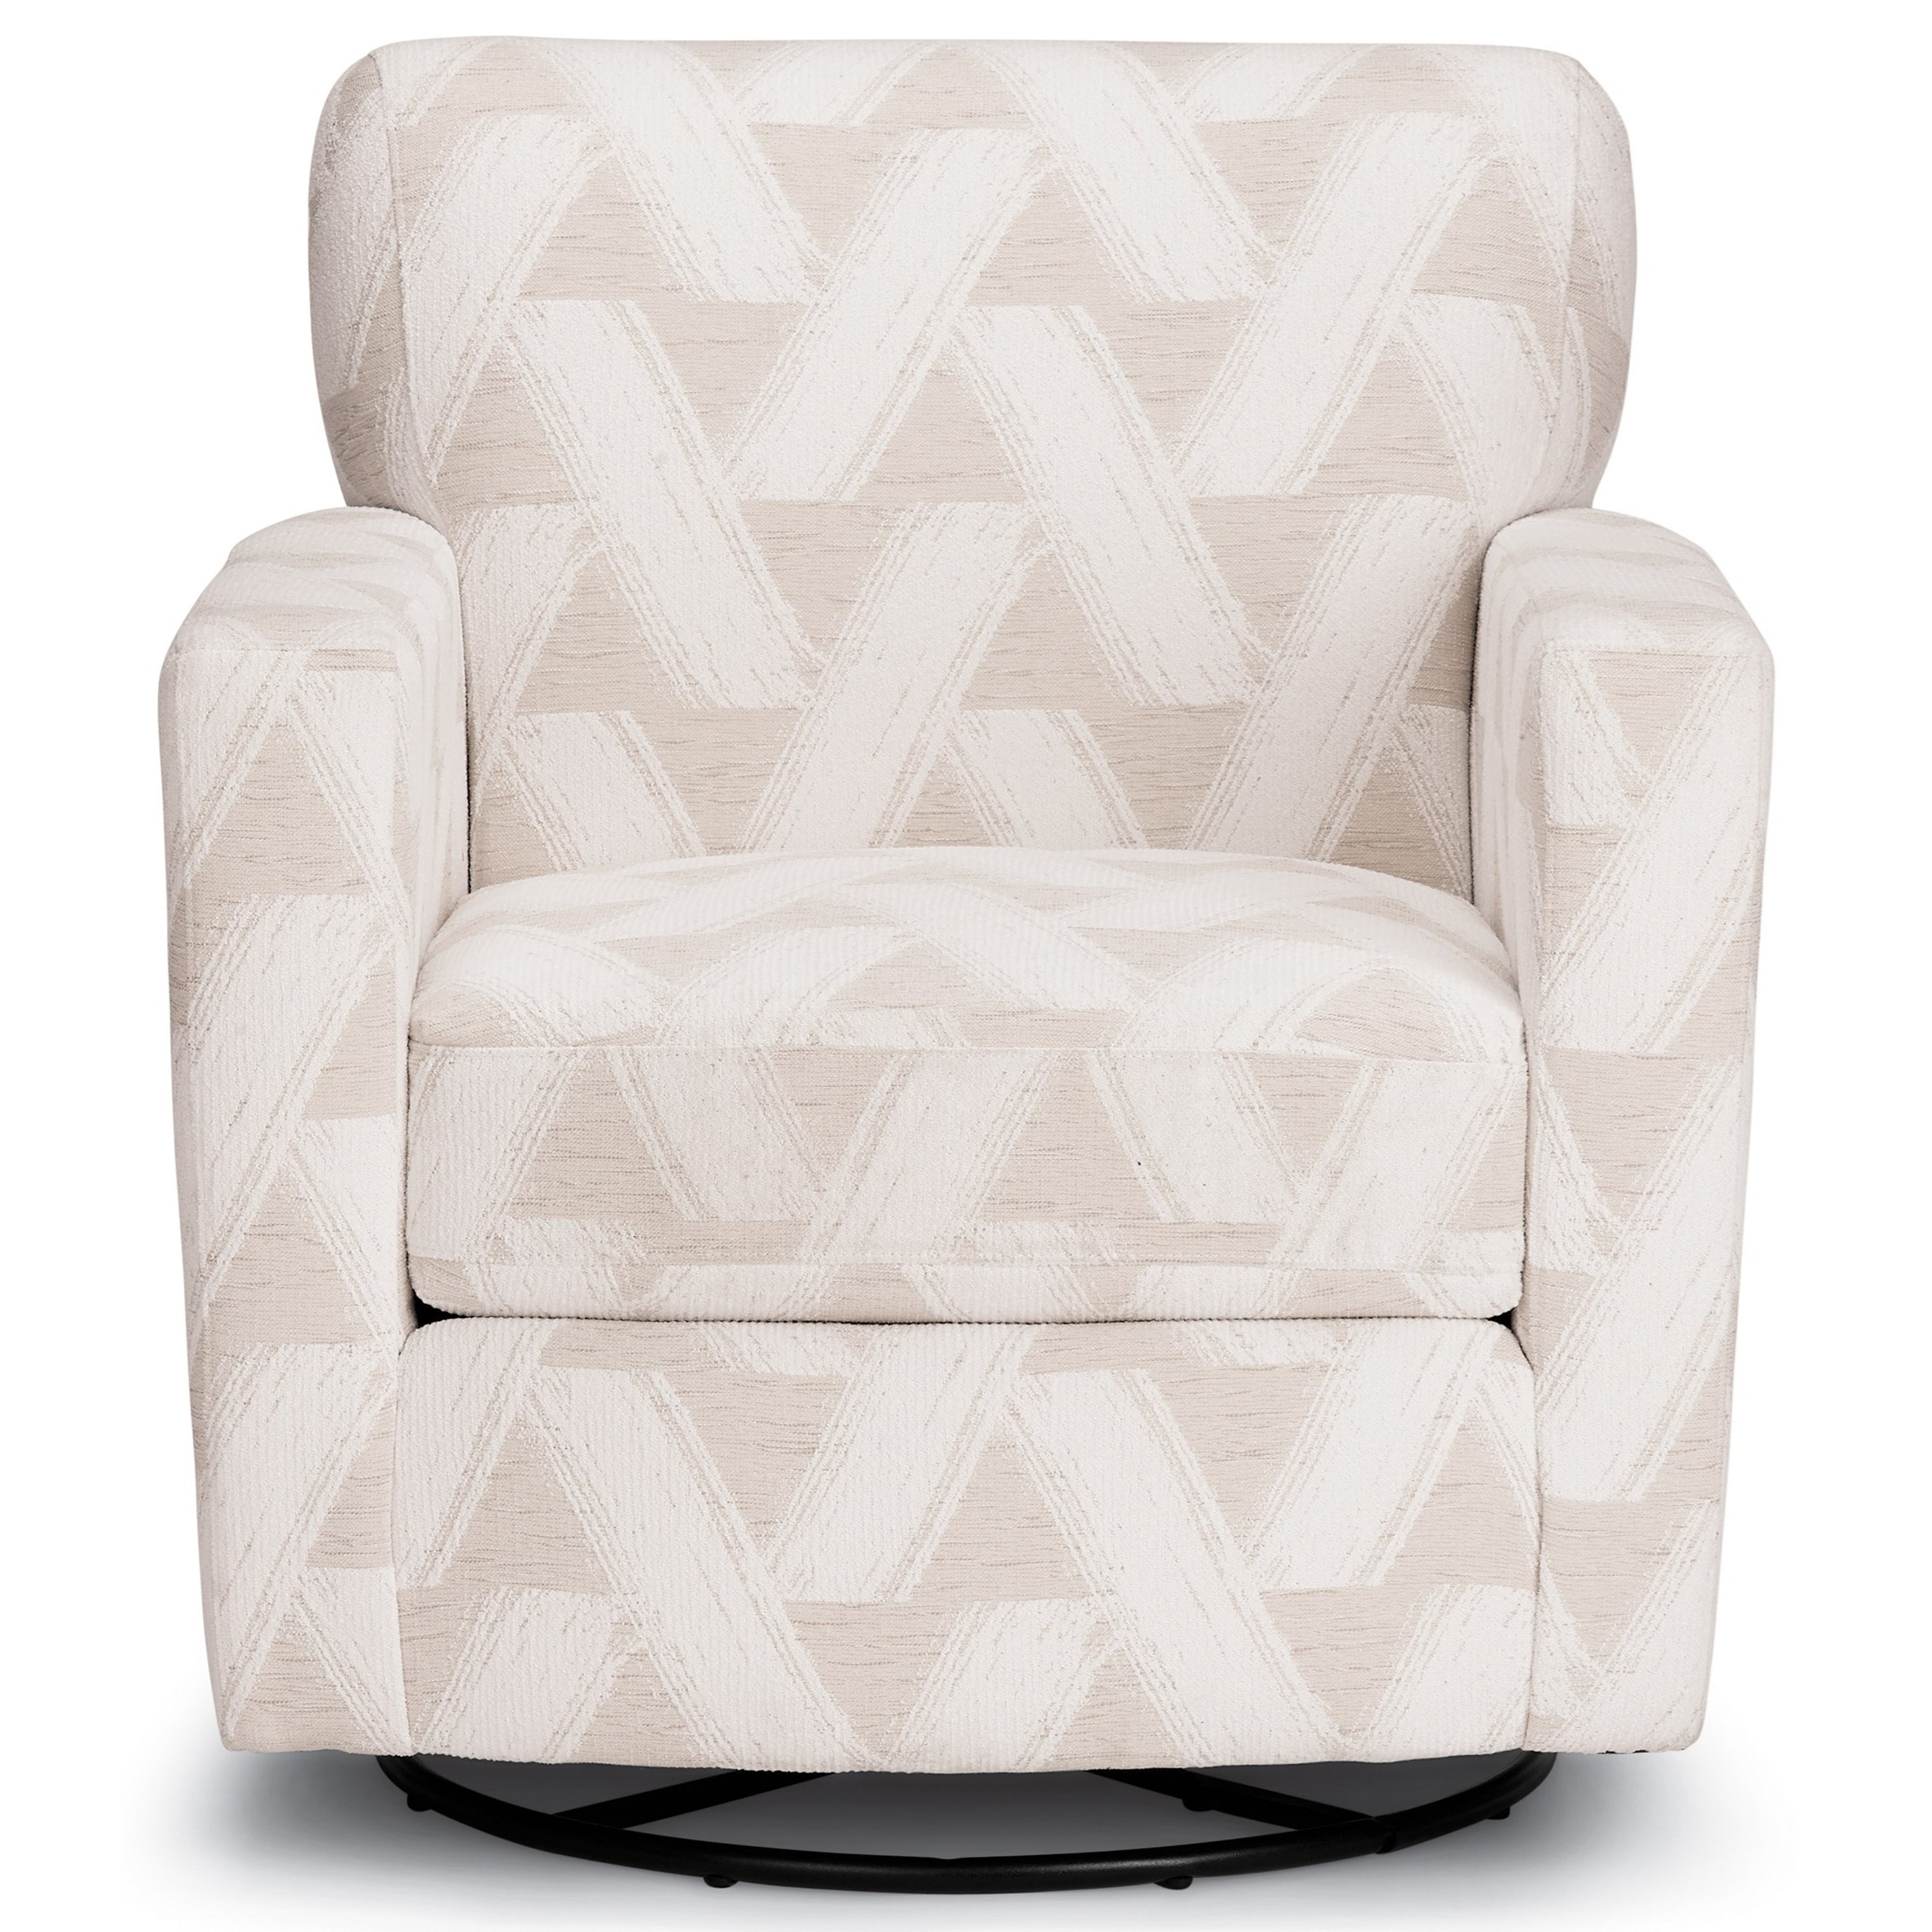 Caroly Swivel Barrel Chair by Best Home Furnishings at Best Home Furnishings